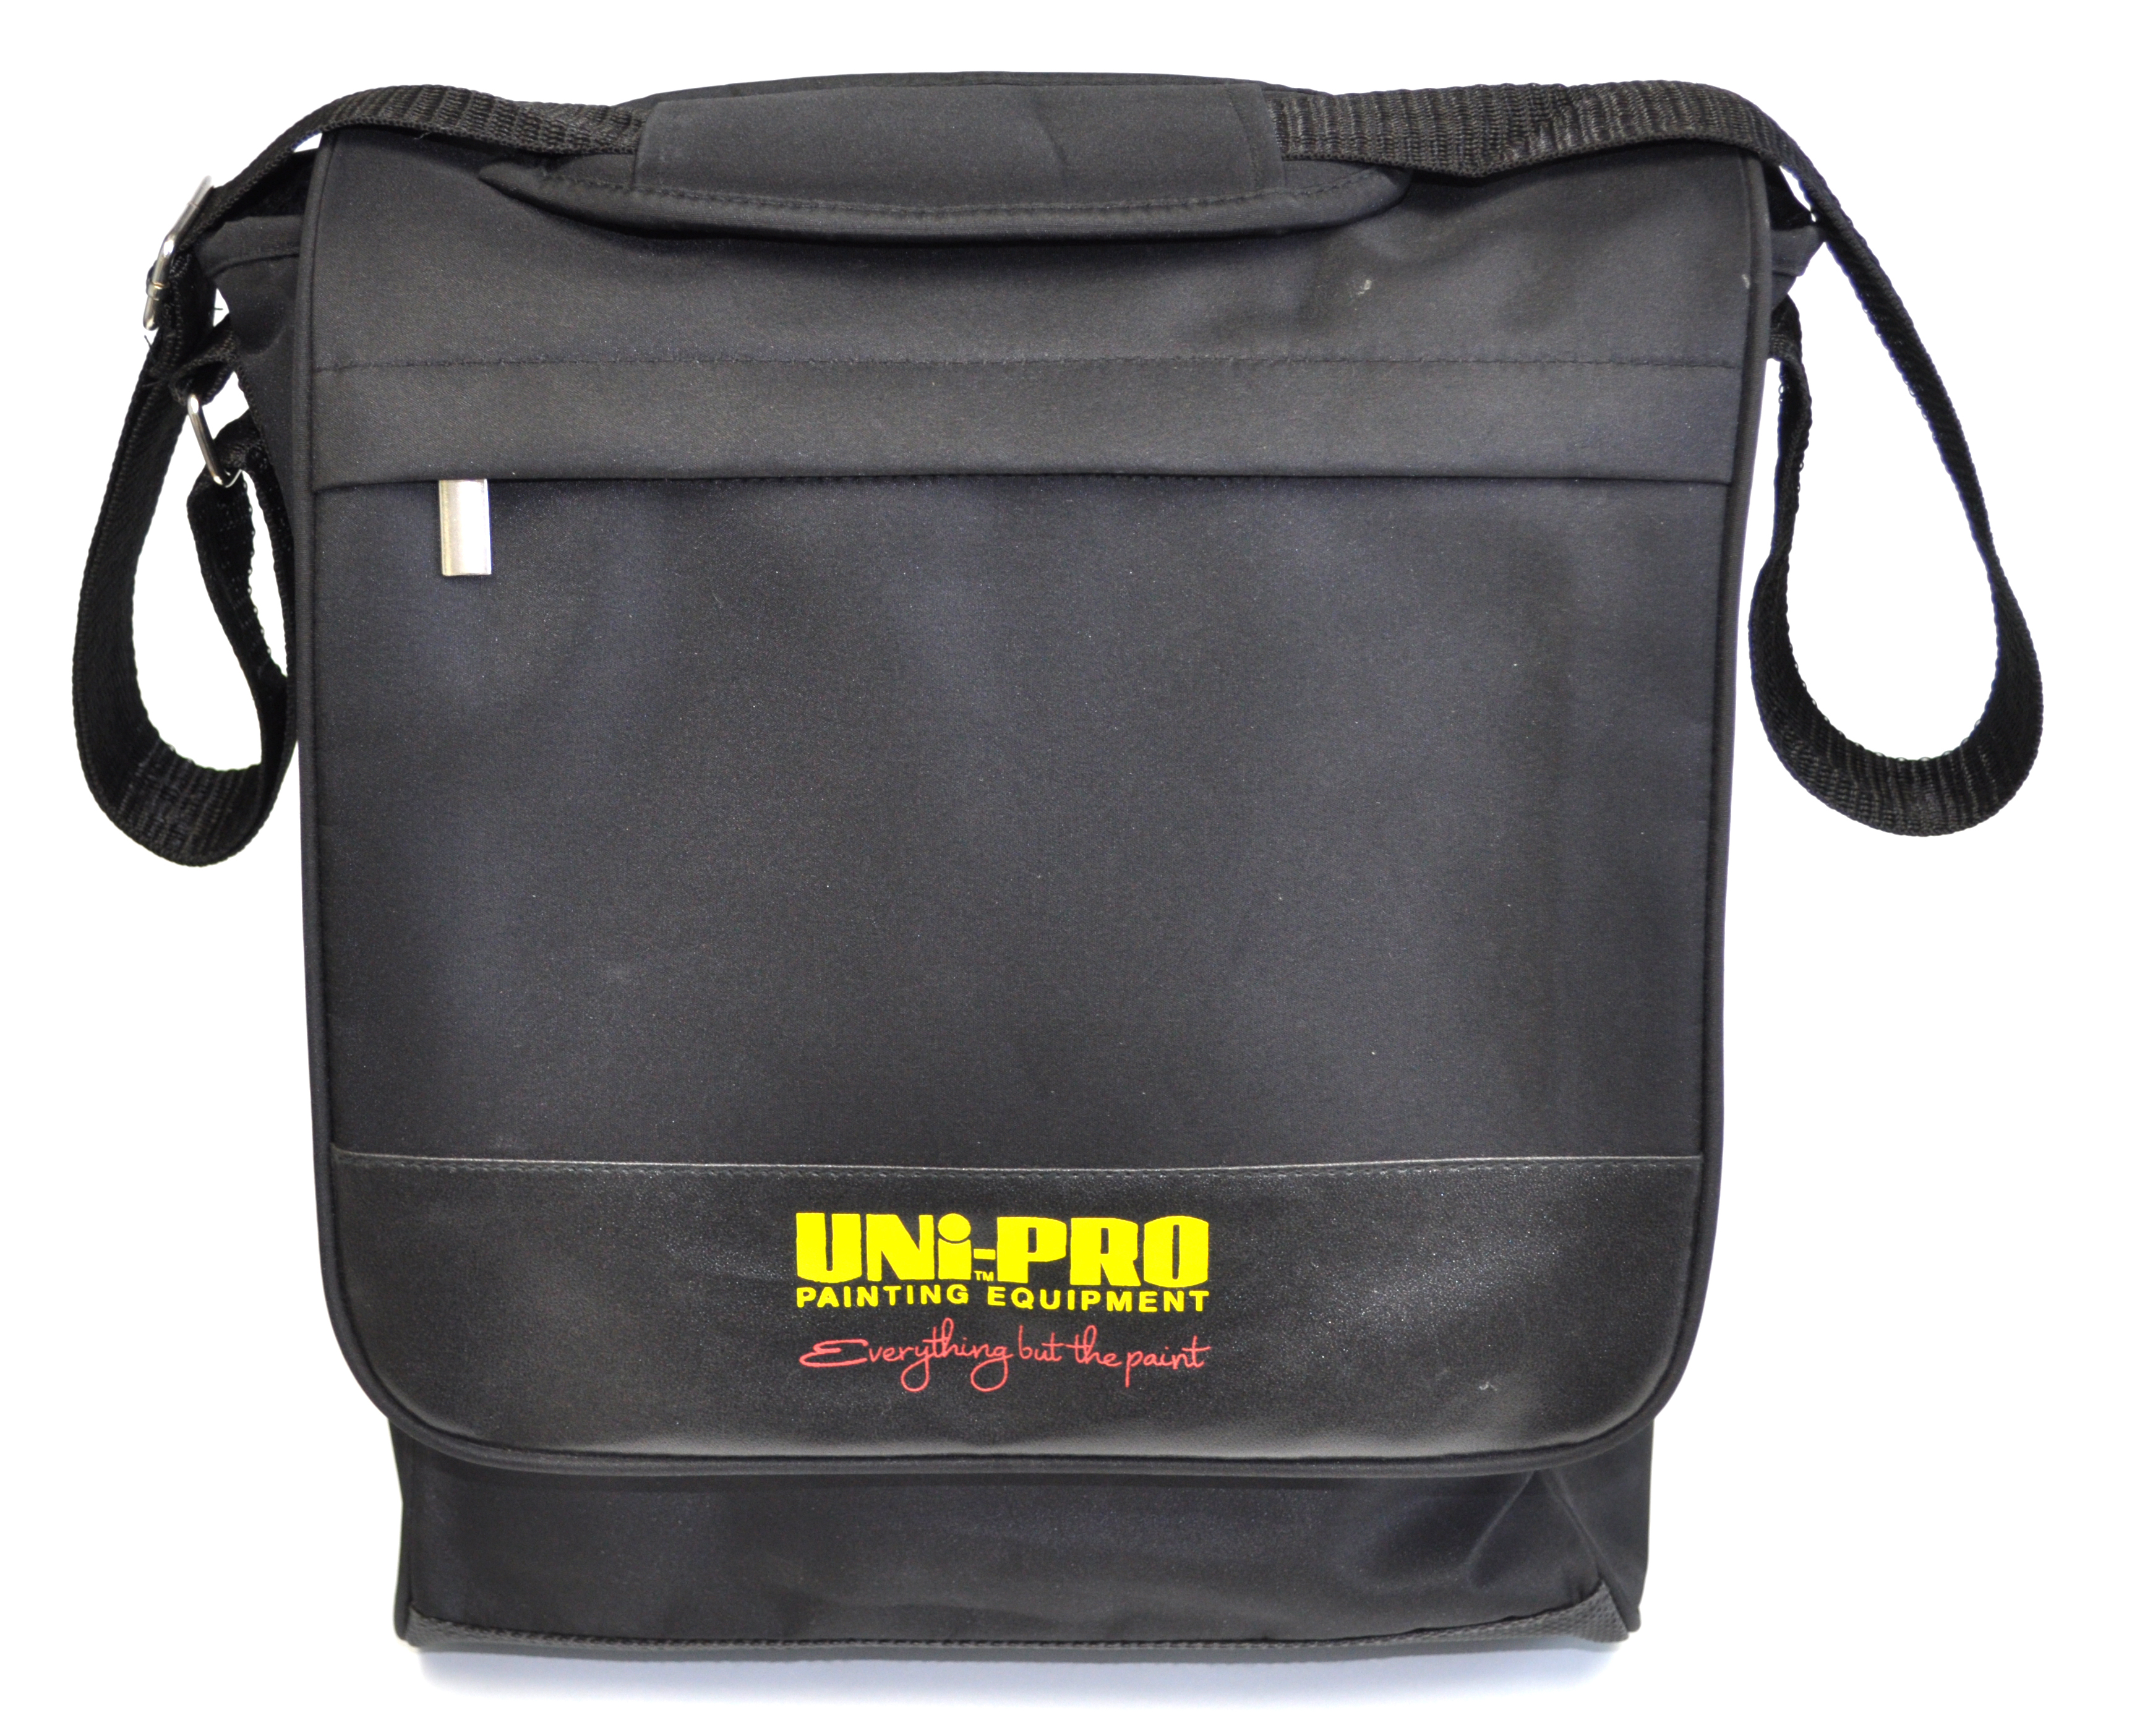 UNi-PRO Bottle Cooler Bag (fits 3 bottles)